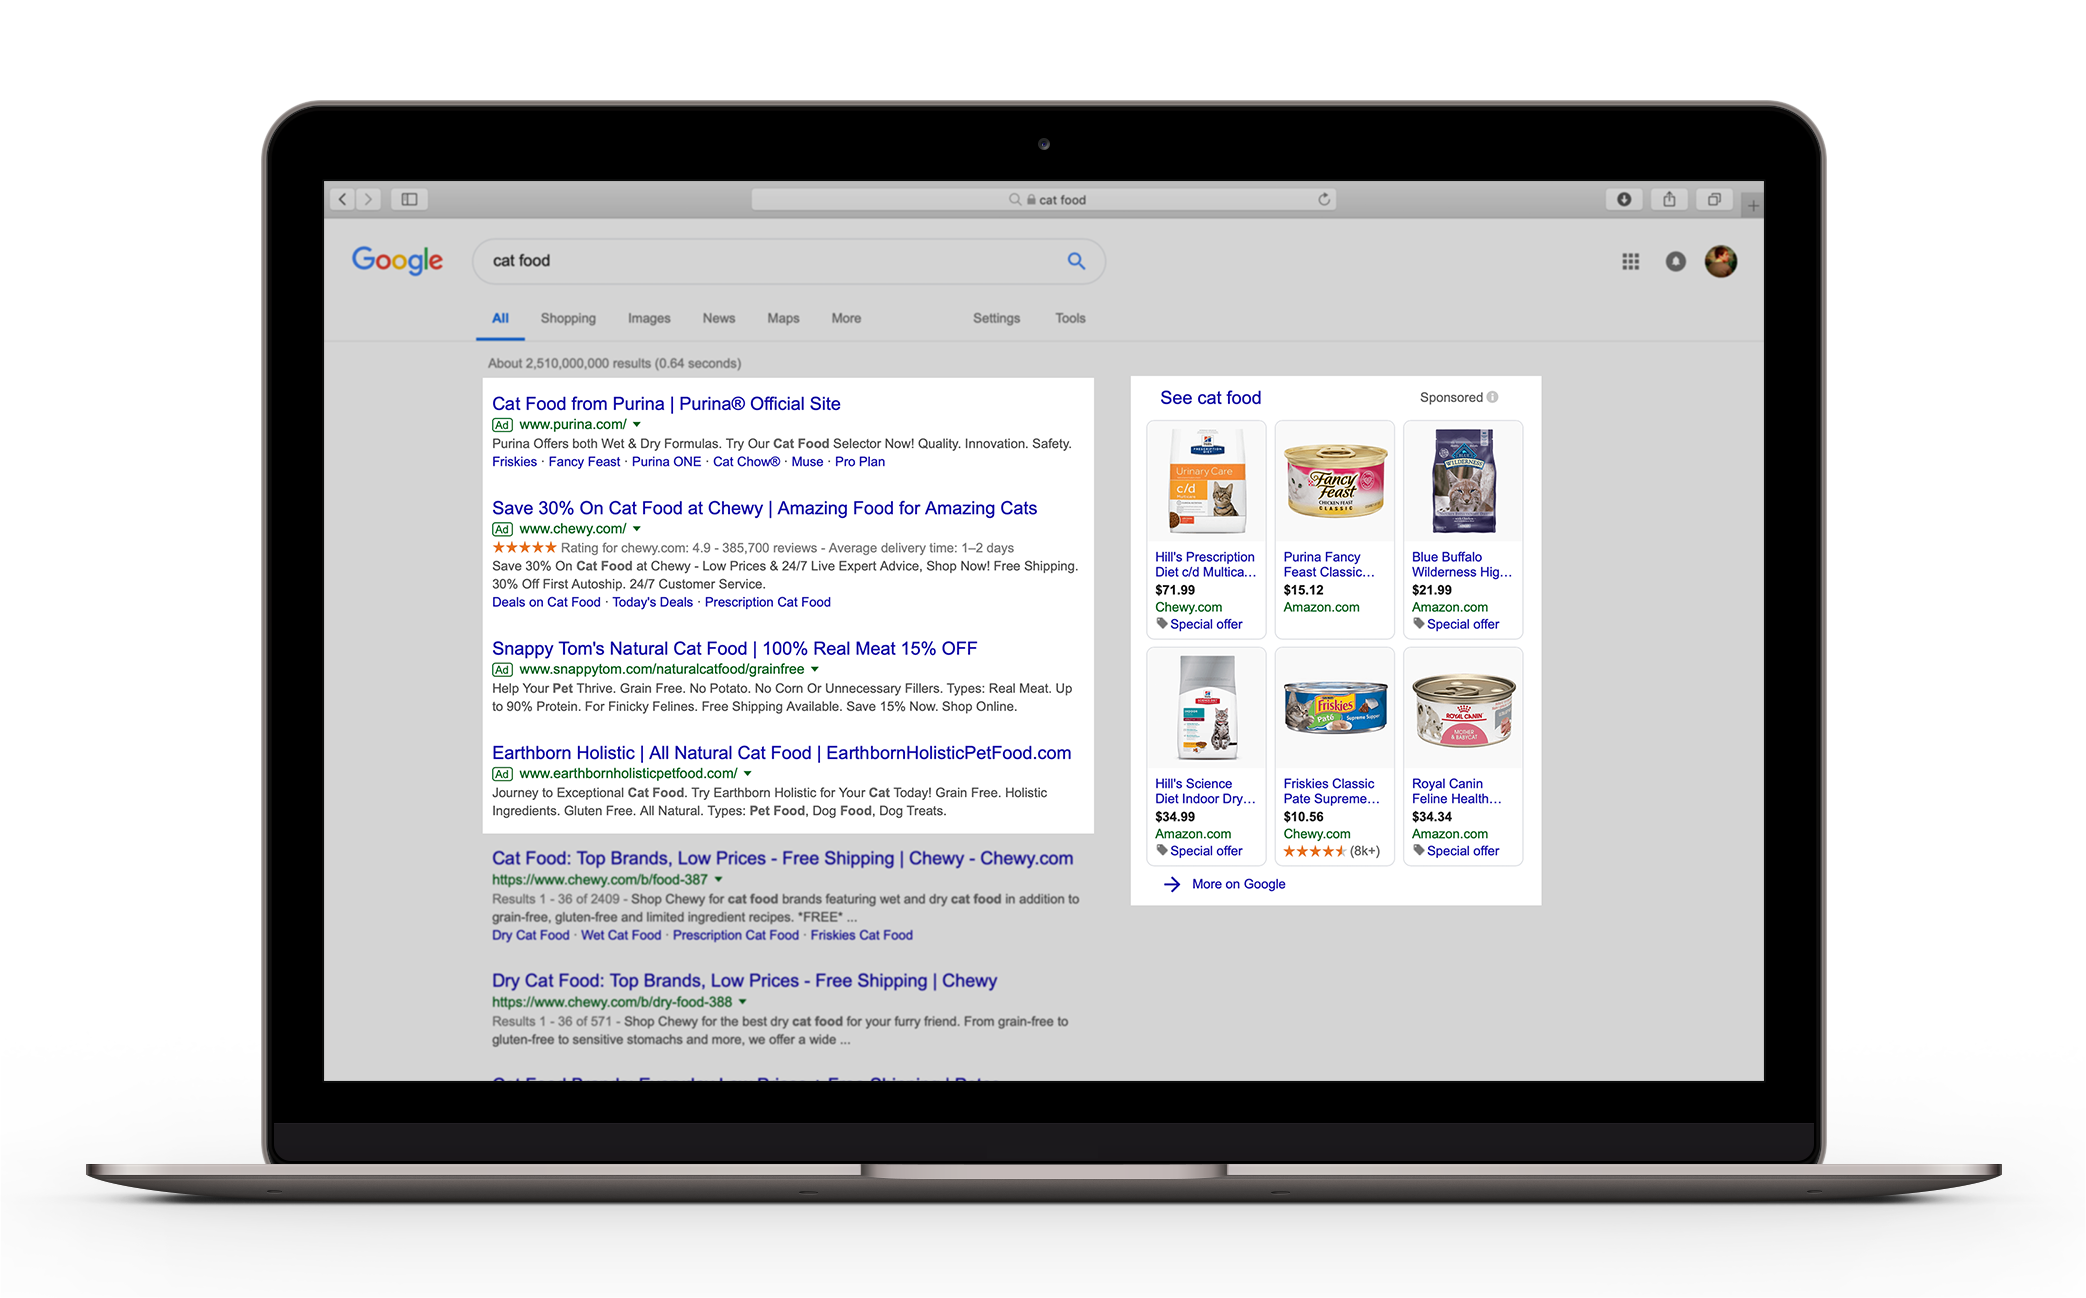 Paid search ads show above the organic results on a search engine such as Google and are marked as advertisements but are formatted to match the regular results, as shown when searching for cat food.